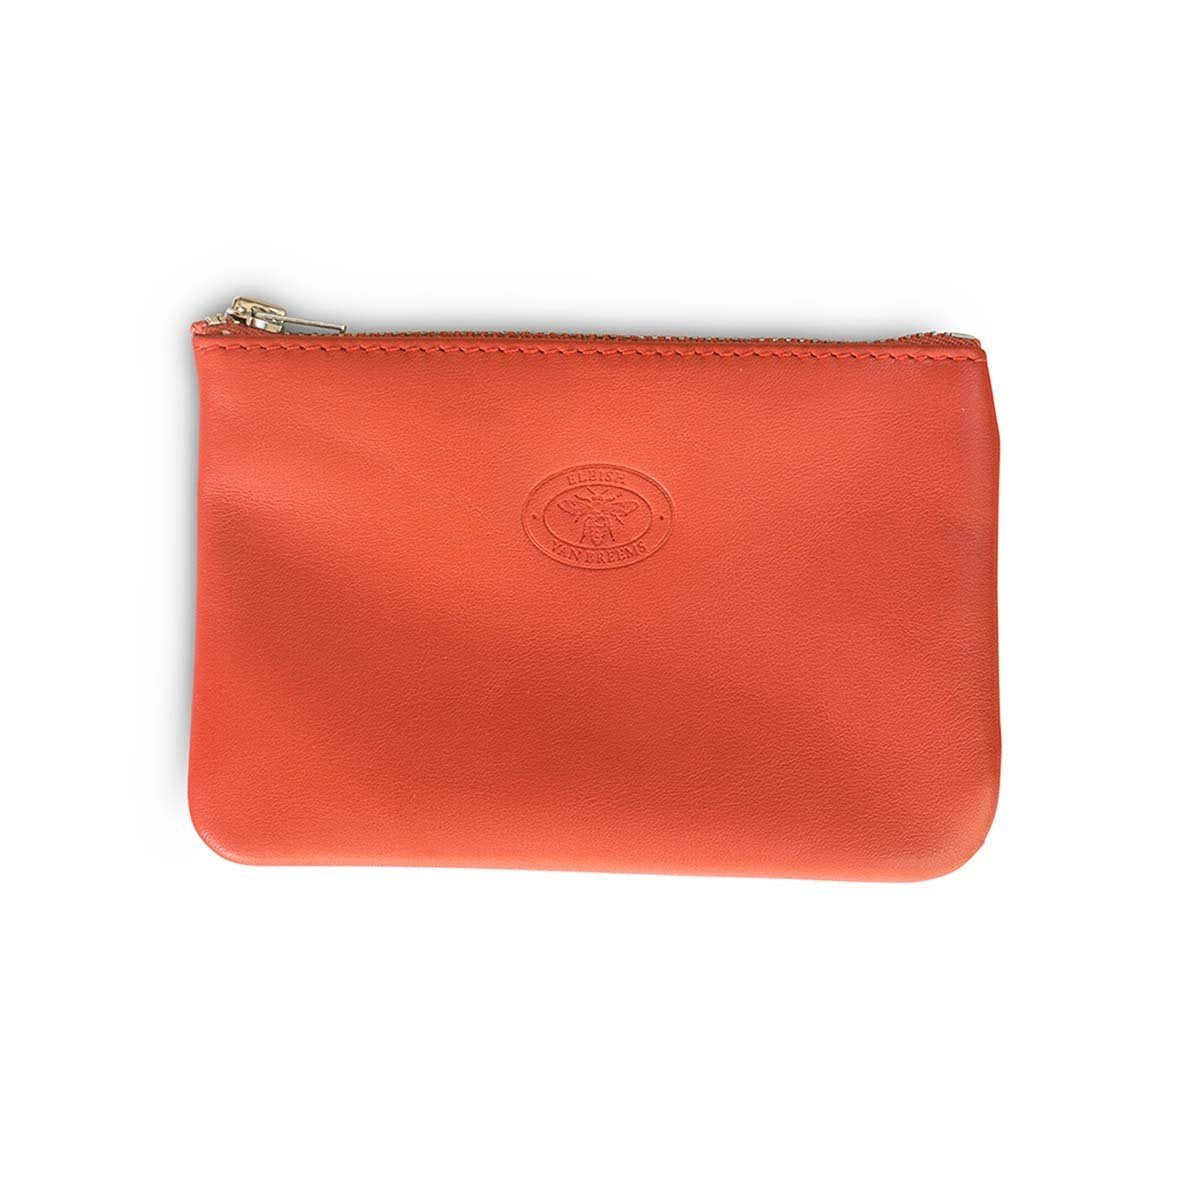 Folly Small Leather Pouch Clutch-Small-Eleish Van Breems Home